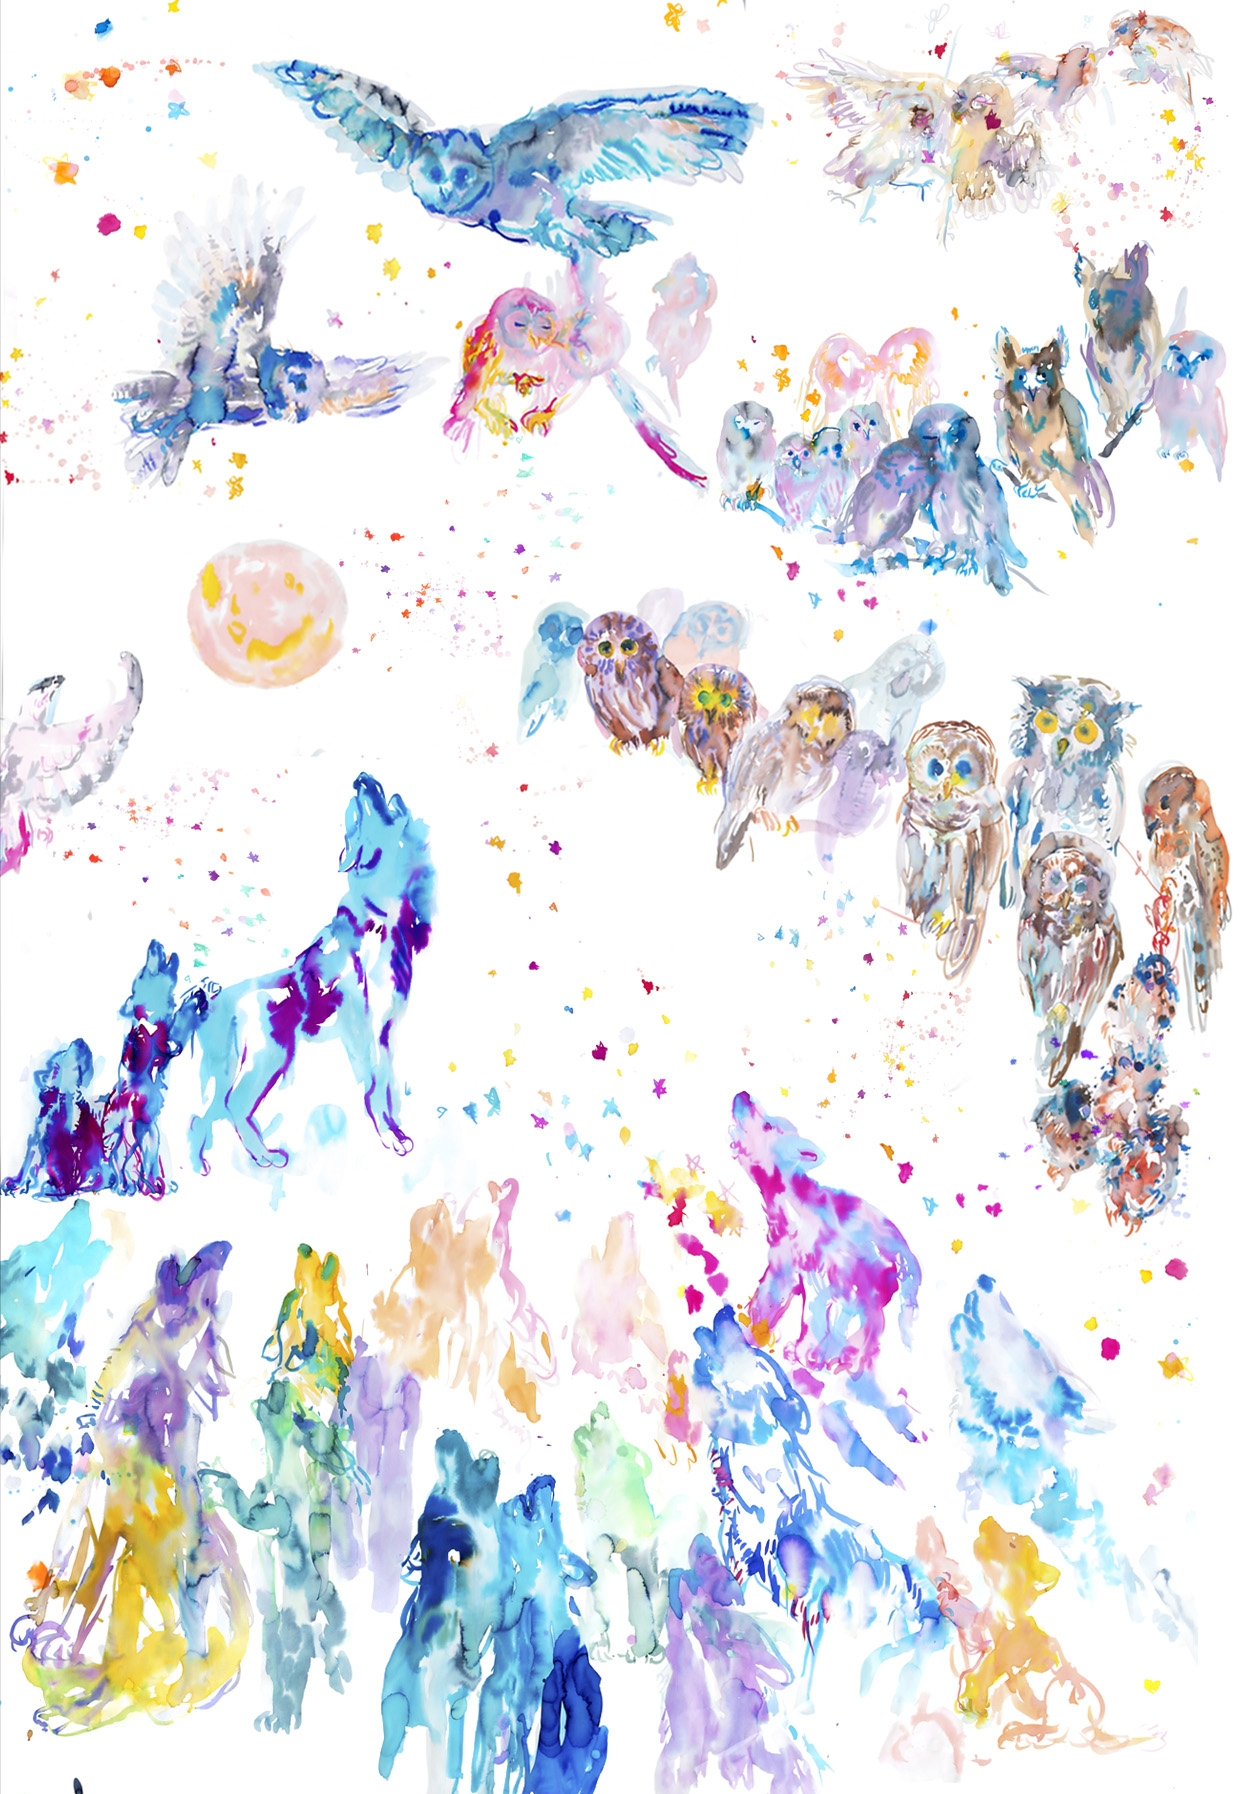 howling tableau b  - ARTWORK DETAILS:Fine Art print of original watercolor painting.Limited editionWidth: 68 cm (approx 27